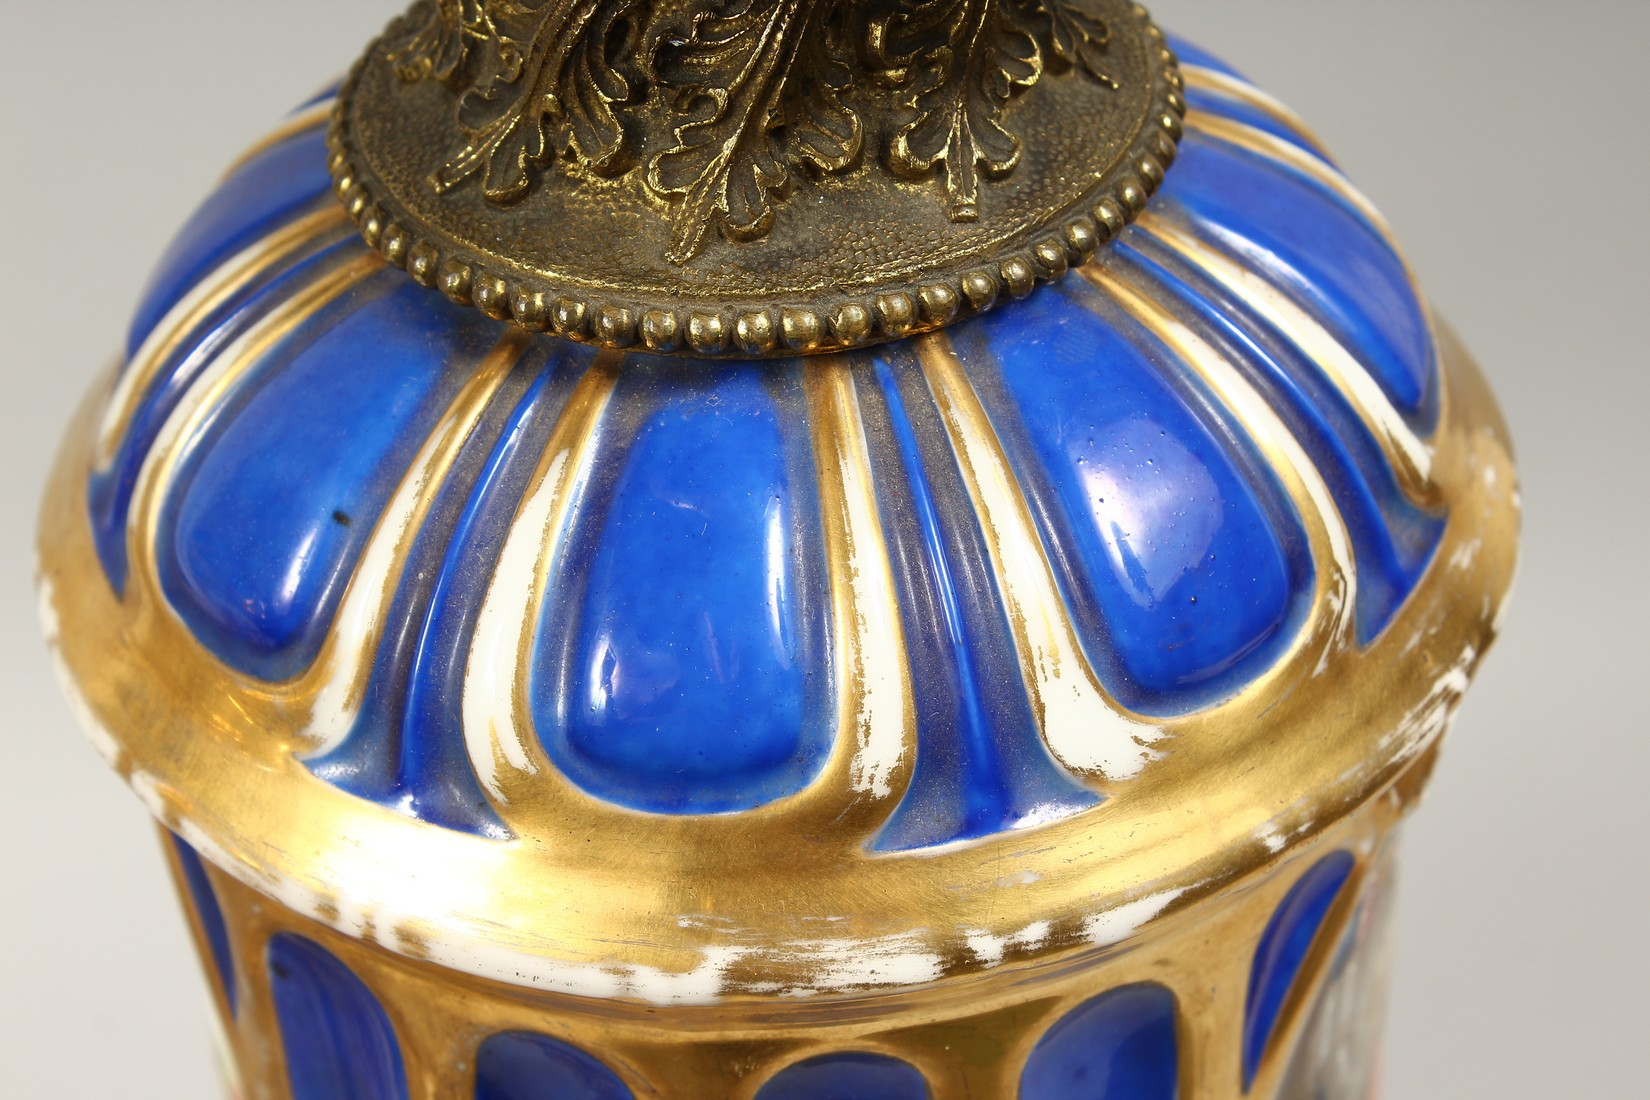 A SUPERB PAIR OF 19TH CENTURY FRENCH PORCELAIN AND GILT BRONZE LAMPS ON STANDS, painted with - Image 20 of 24